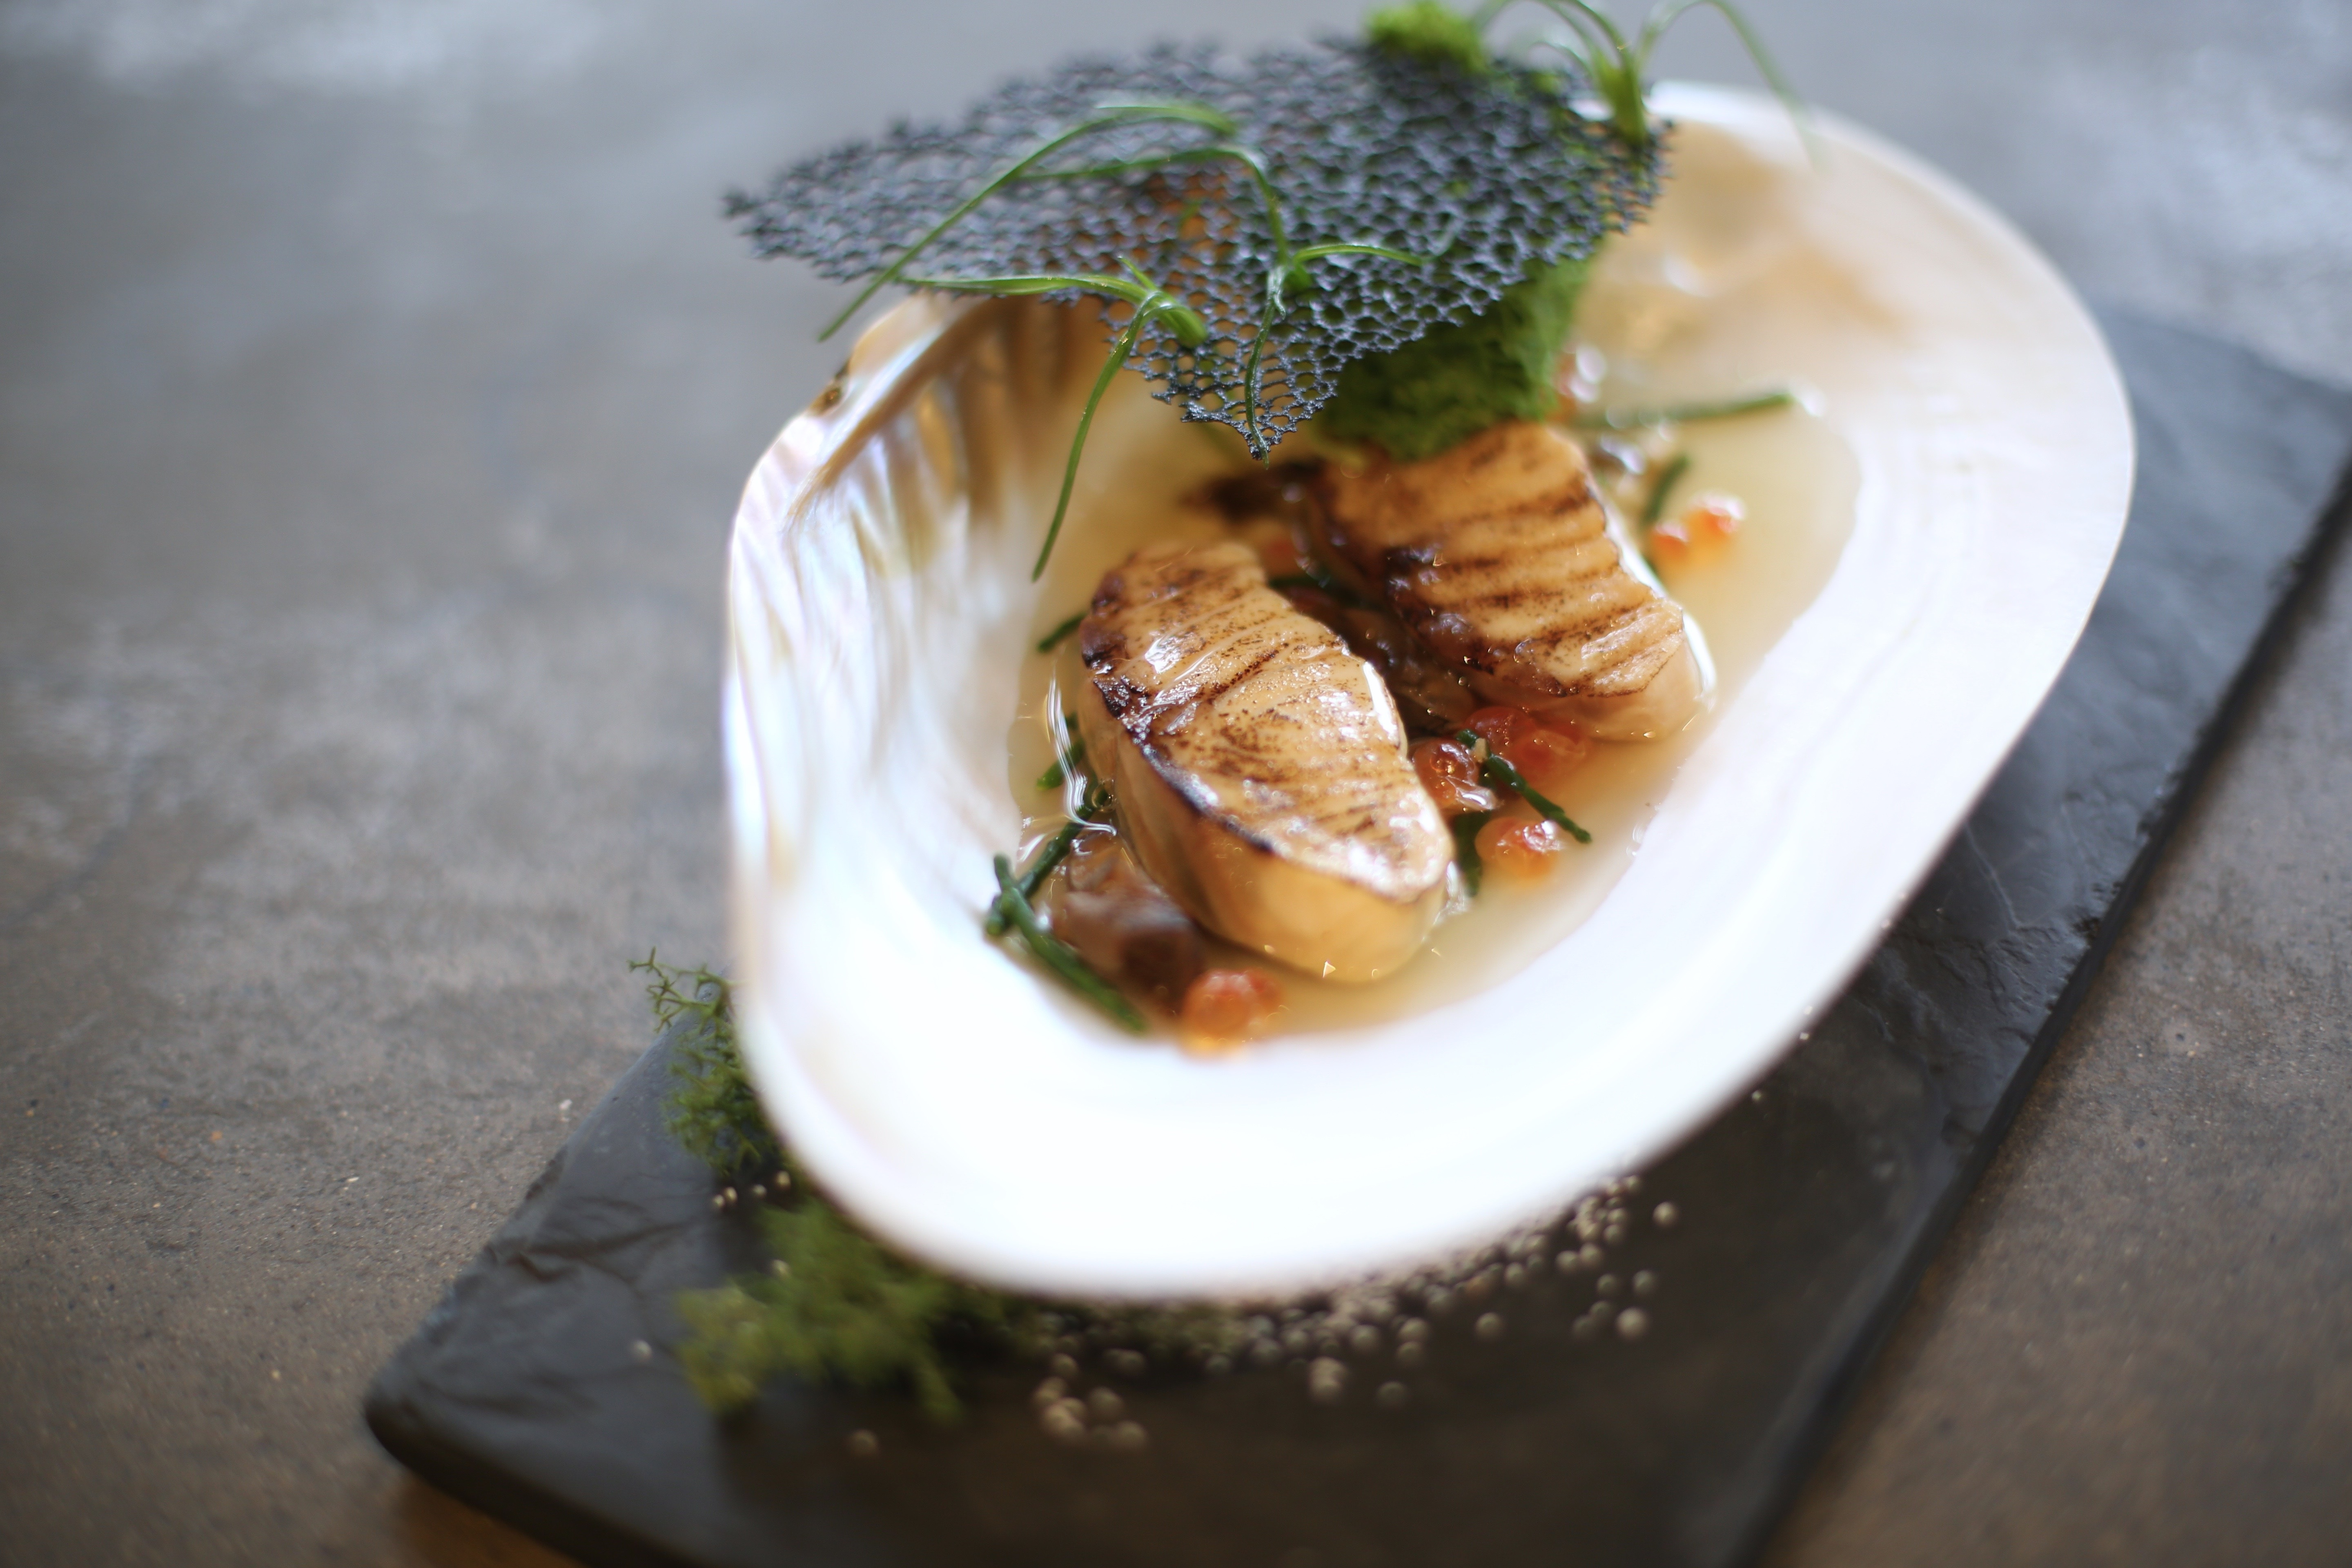 Reserve a table at Club Gascon